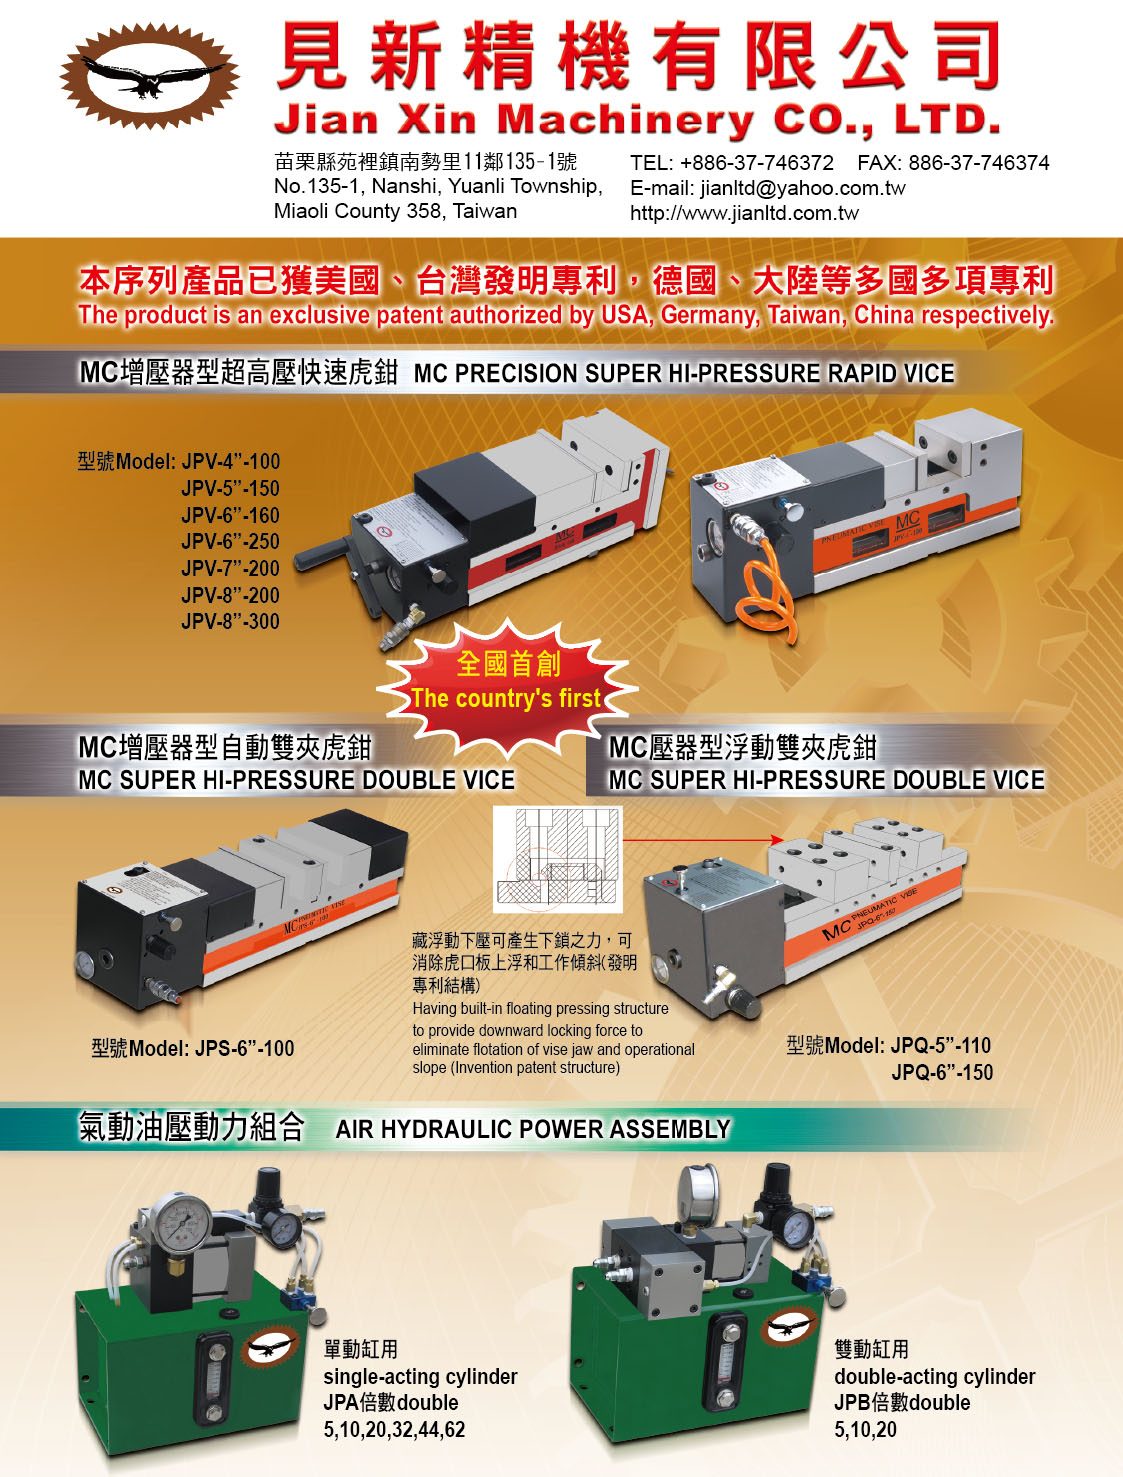 JIAN XIN MACHINERY CO., LTD.